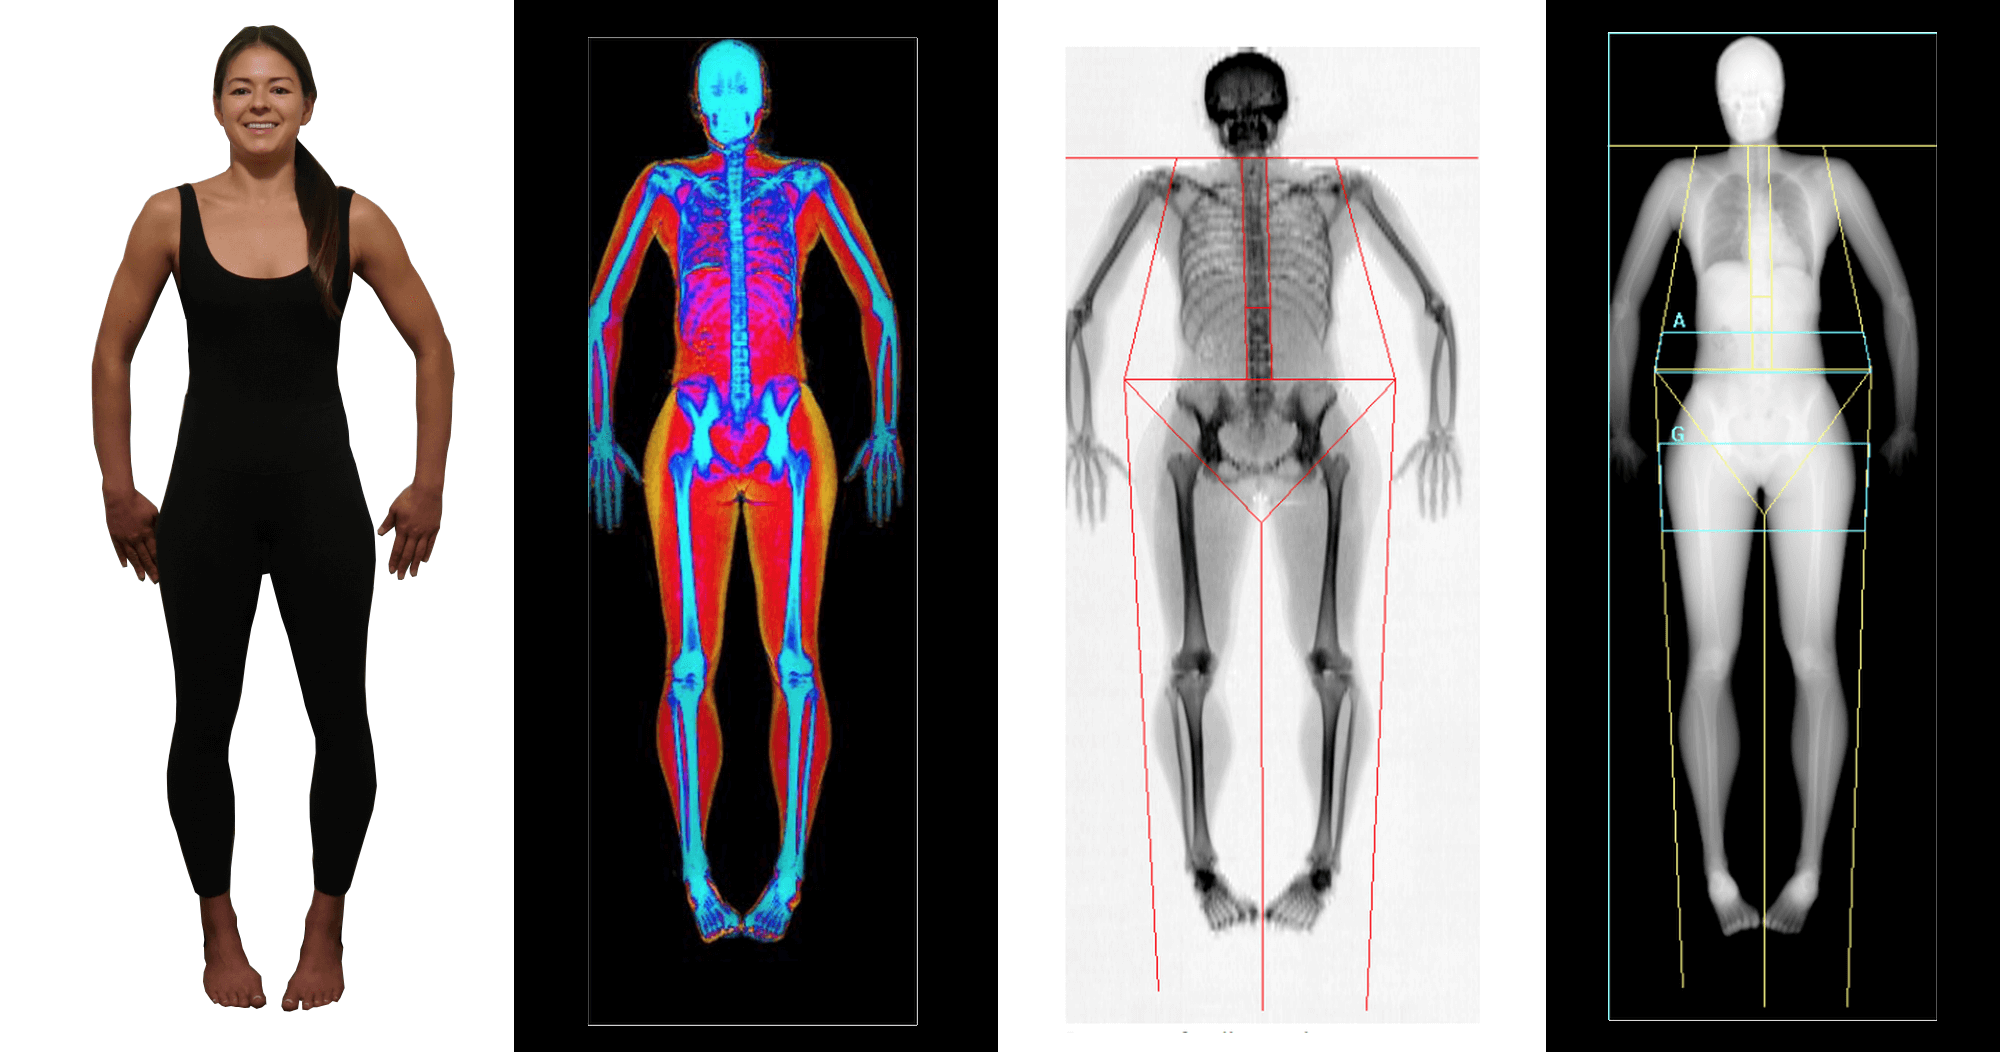 dexa scans and kim lying beside them at body comp imaging